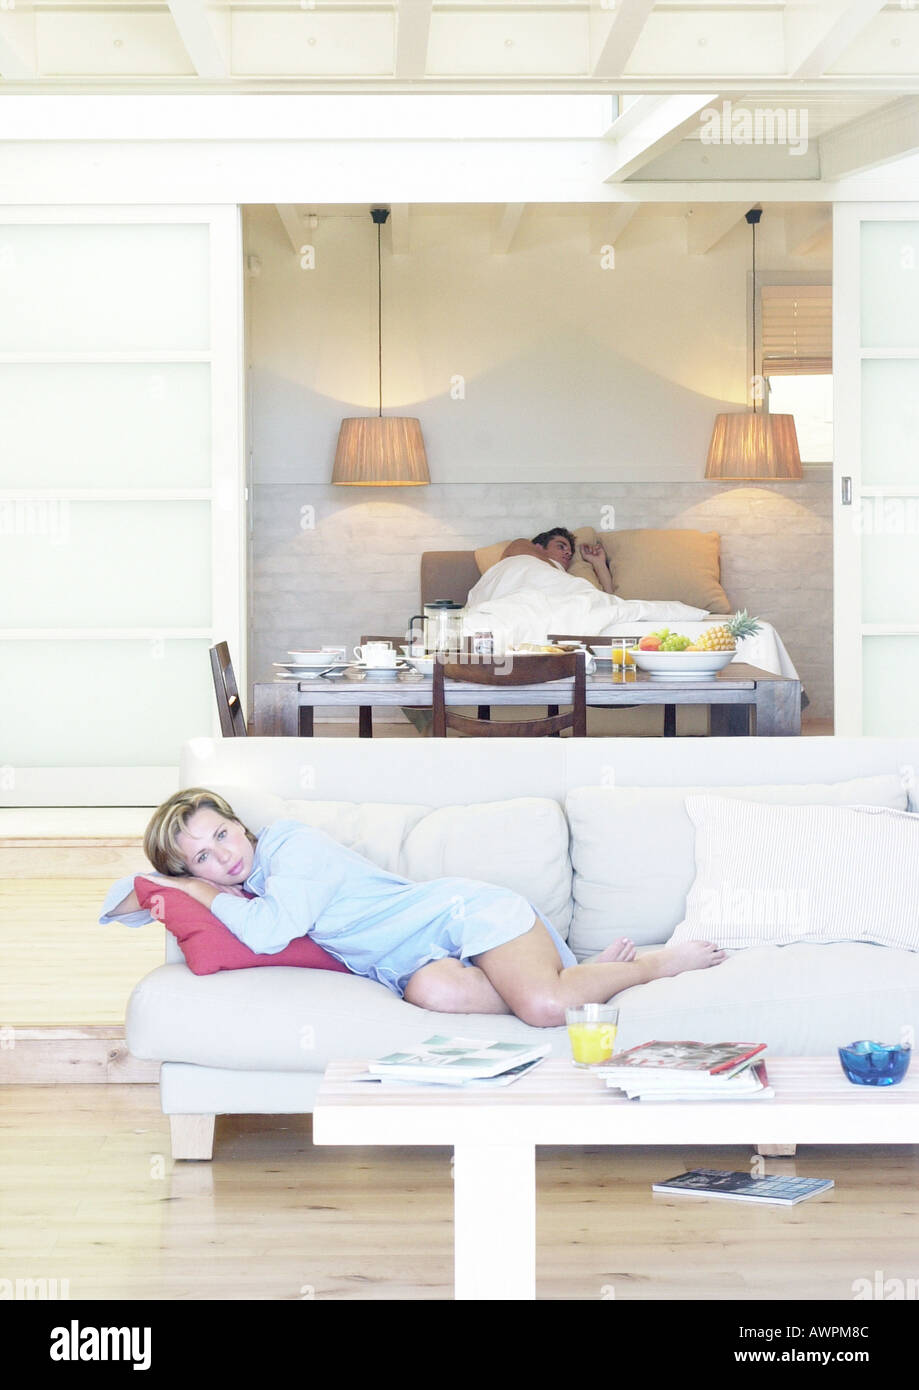 Woman lounging on sofa, man lying in bed in background - Stock Image